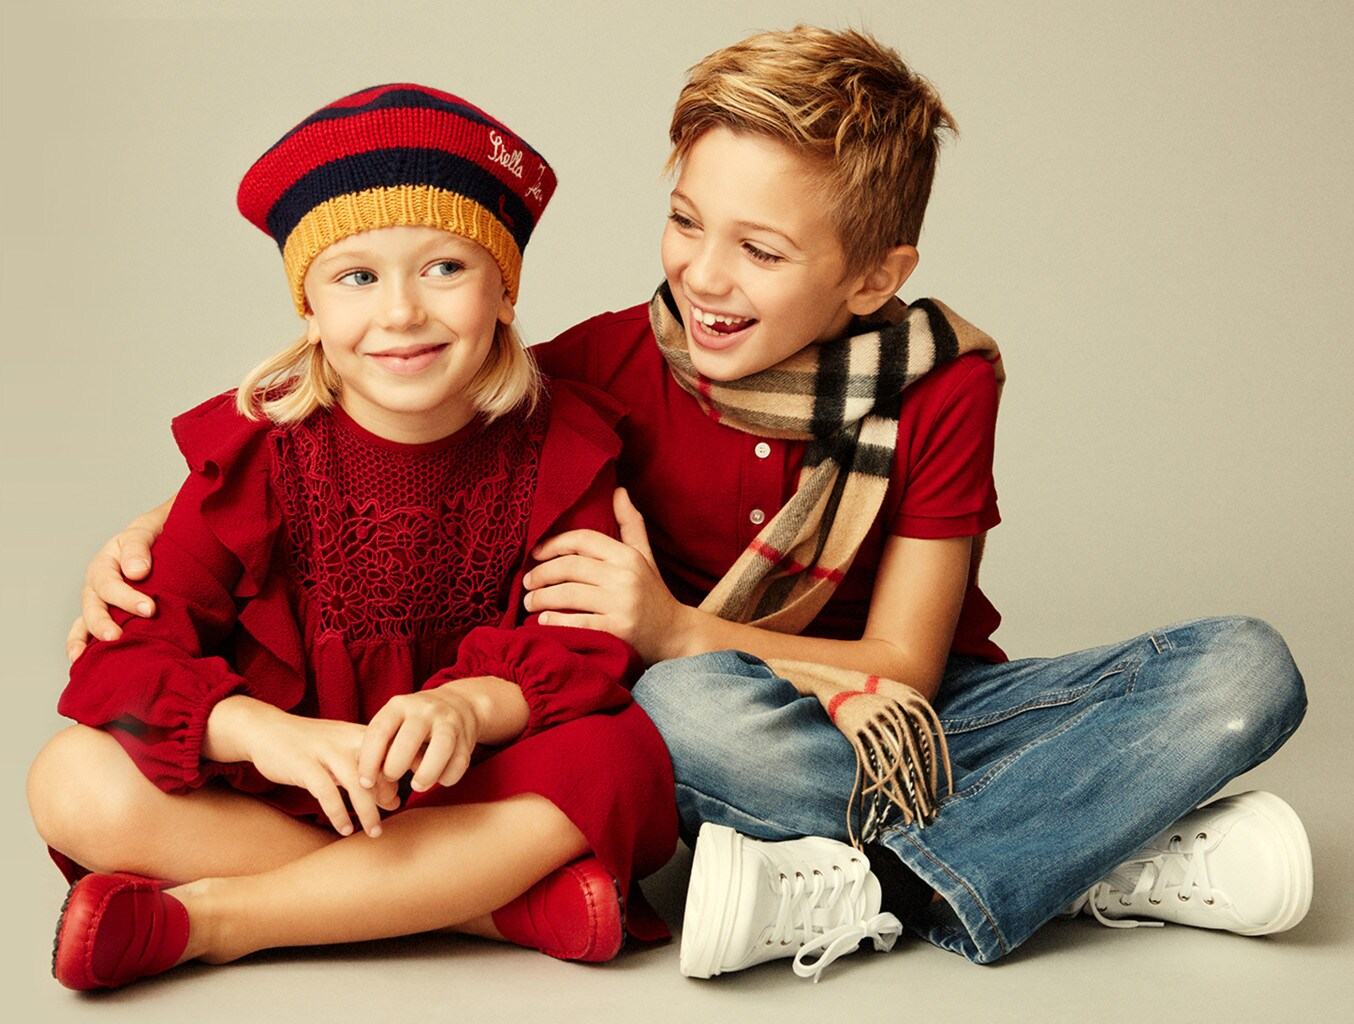 gift-guide-kids-header-tag-mobile-new@2x-1354x1024